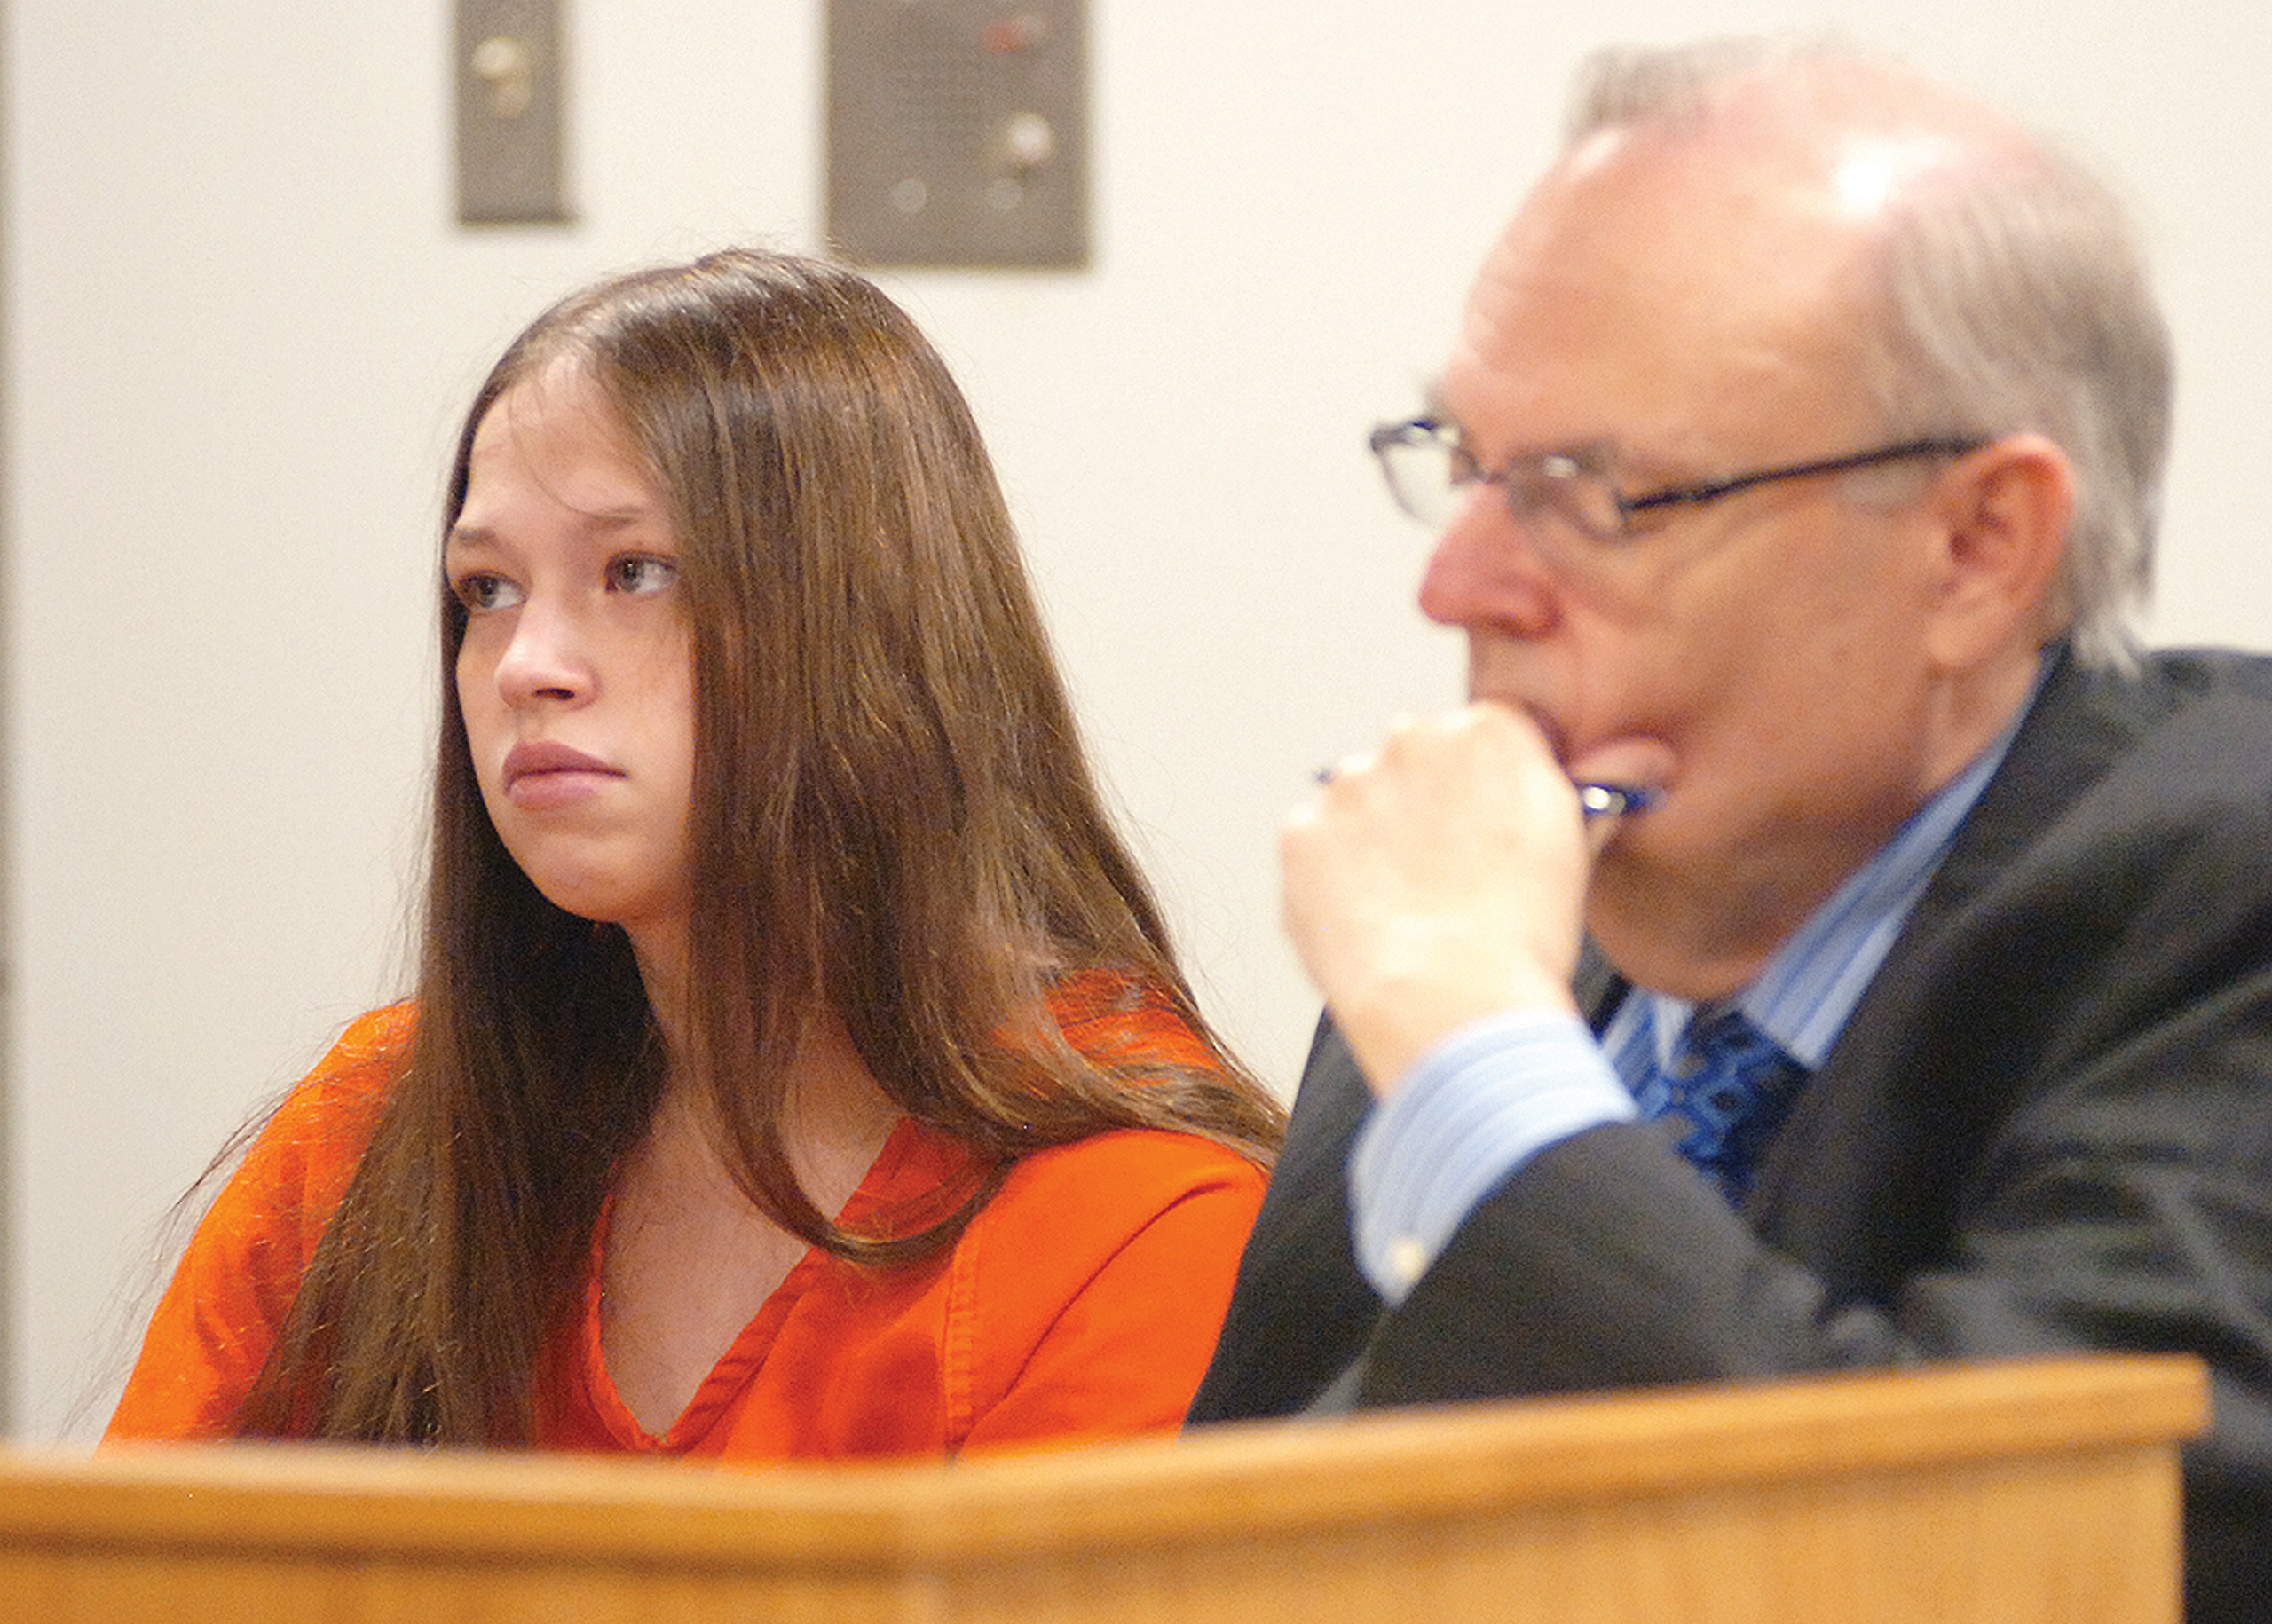 Brittany Pilkington appears for arraignment on three capital murder charges with her attorney Marc S. Triplett in Logan County Common Pleas Court in Bellefontaine, Ohio, on Aug. 26, 2015. Pilkington is charged with suffocating her three sons over a 13-month period.